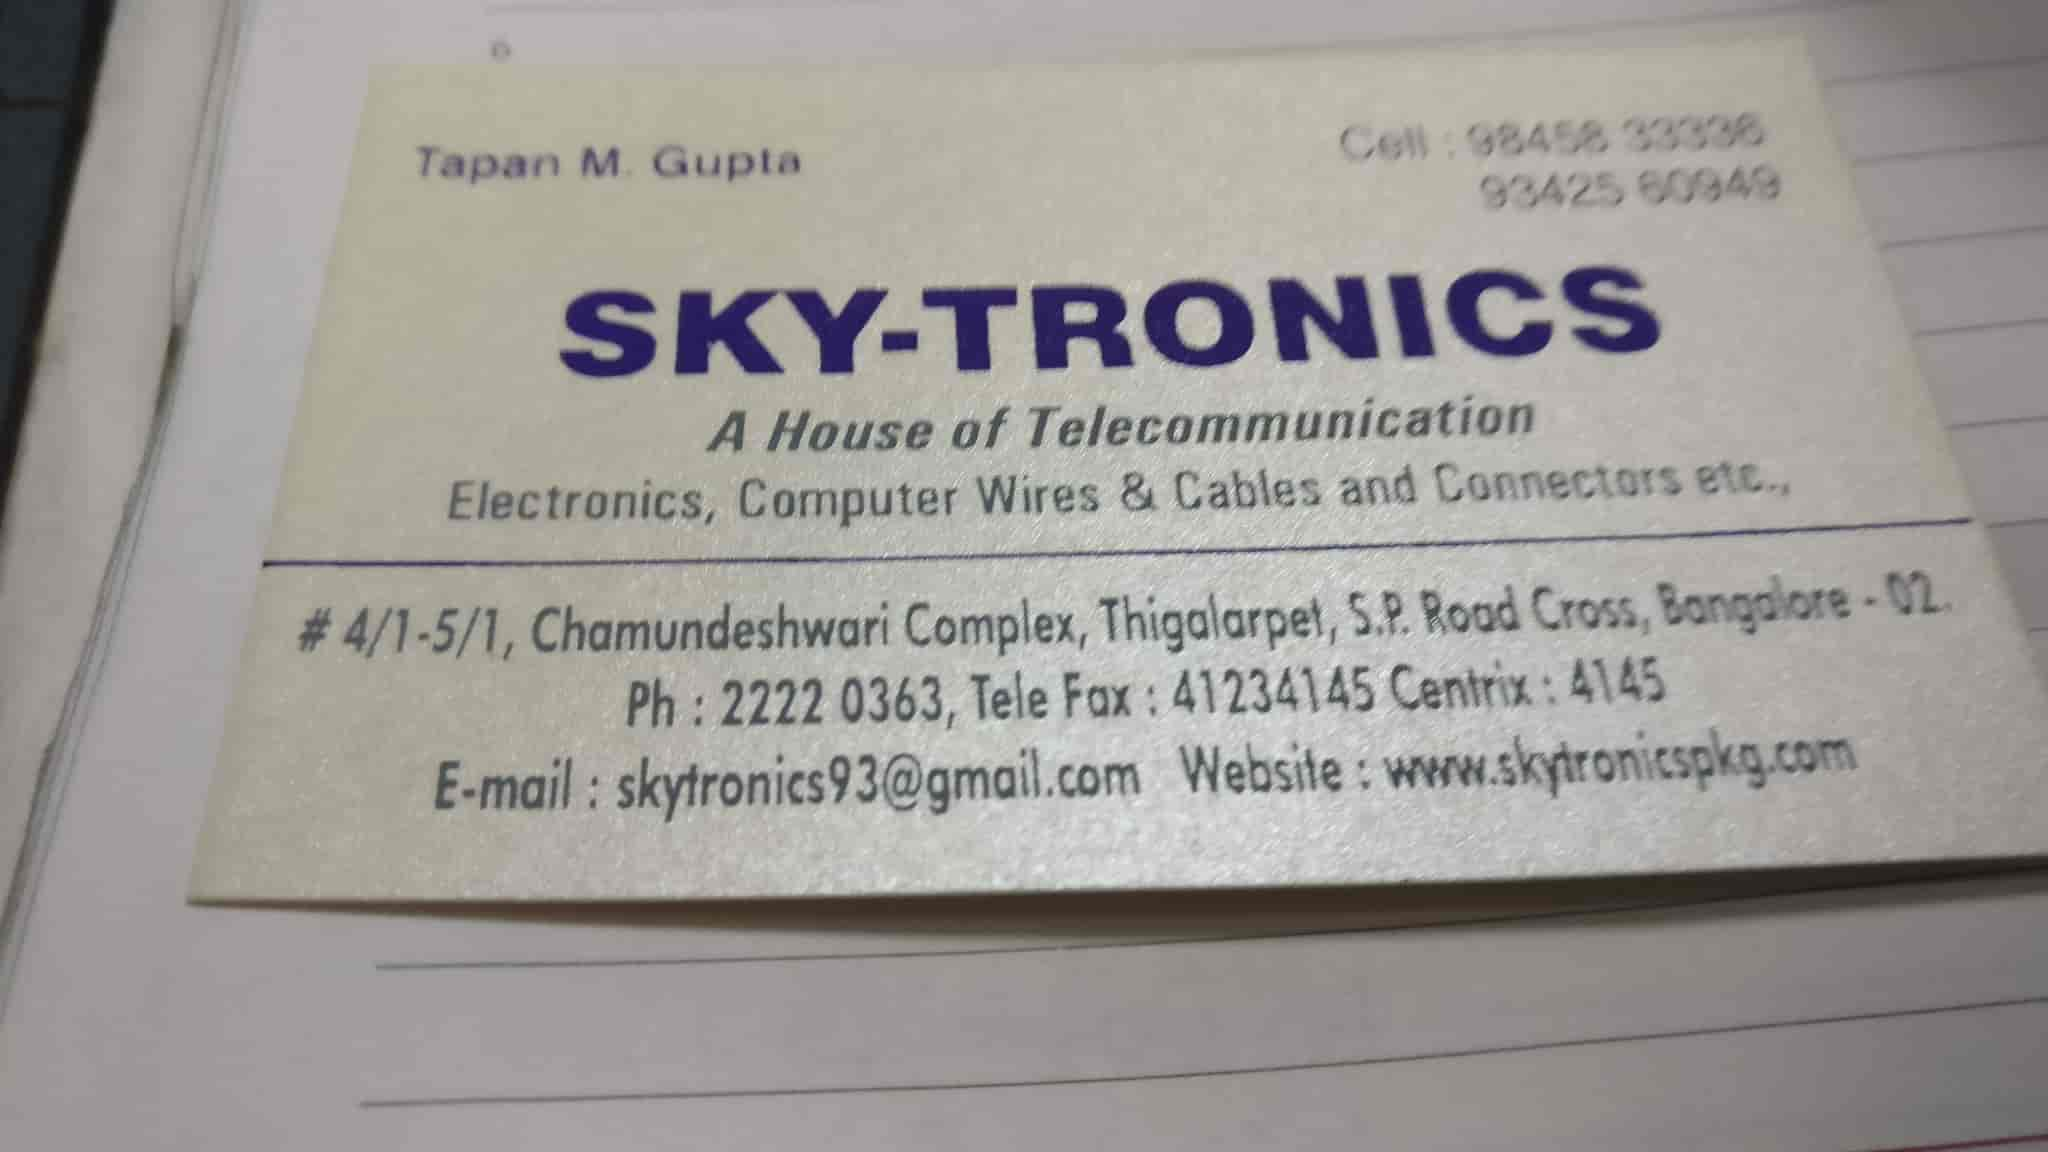 Sky Tronics S P Road Tele munication Cable Dealers in